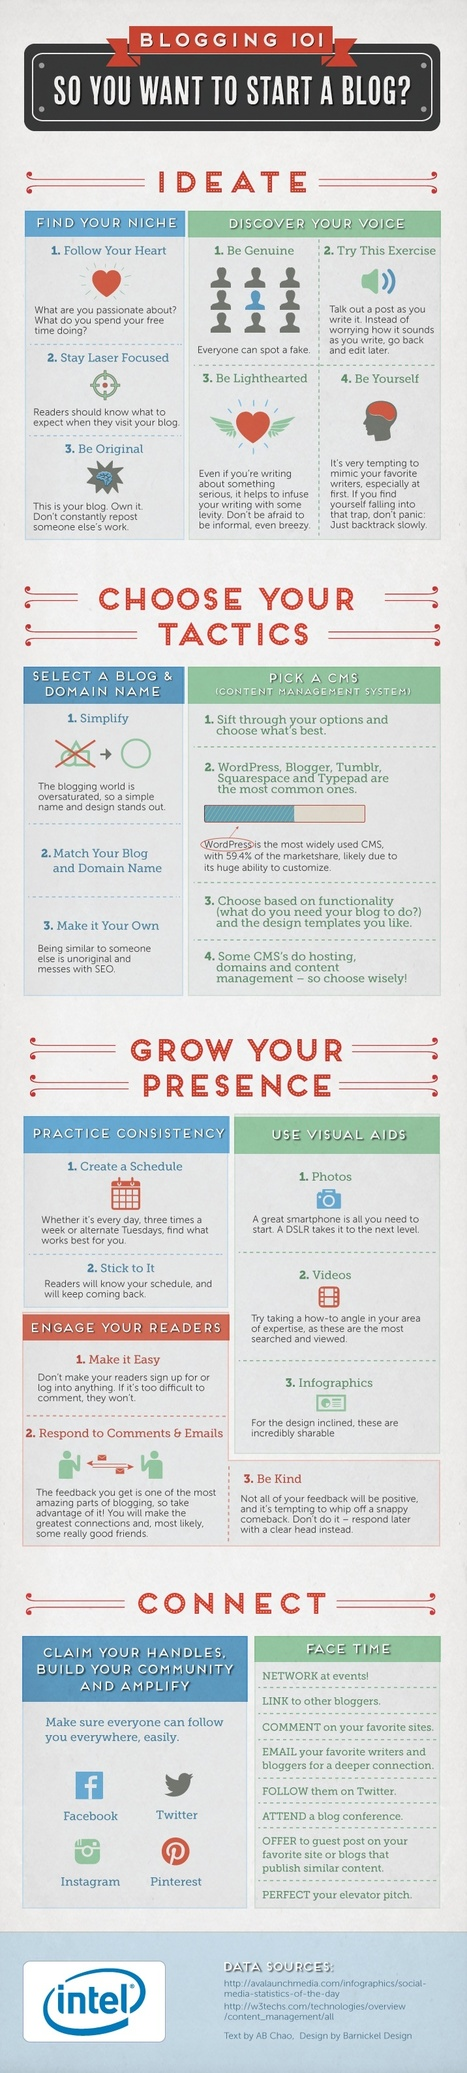 So You Want To Start A Blog? (Infographic) | ICT@school | Scoop.it